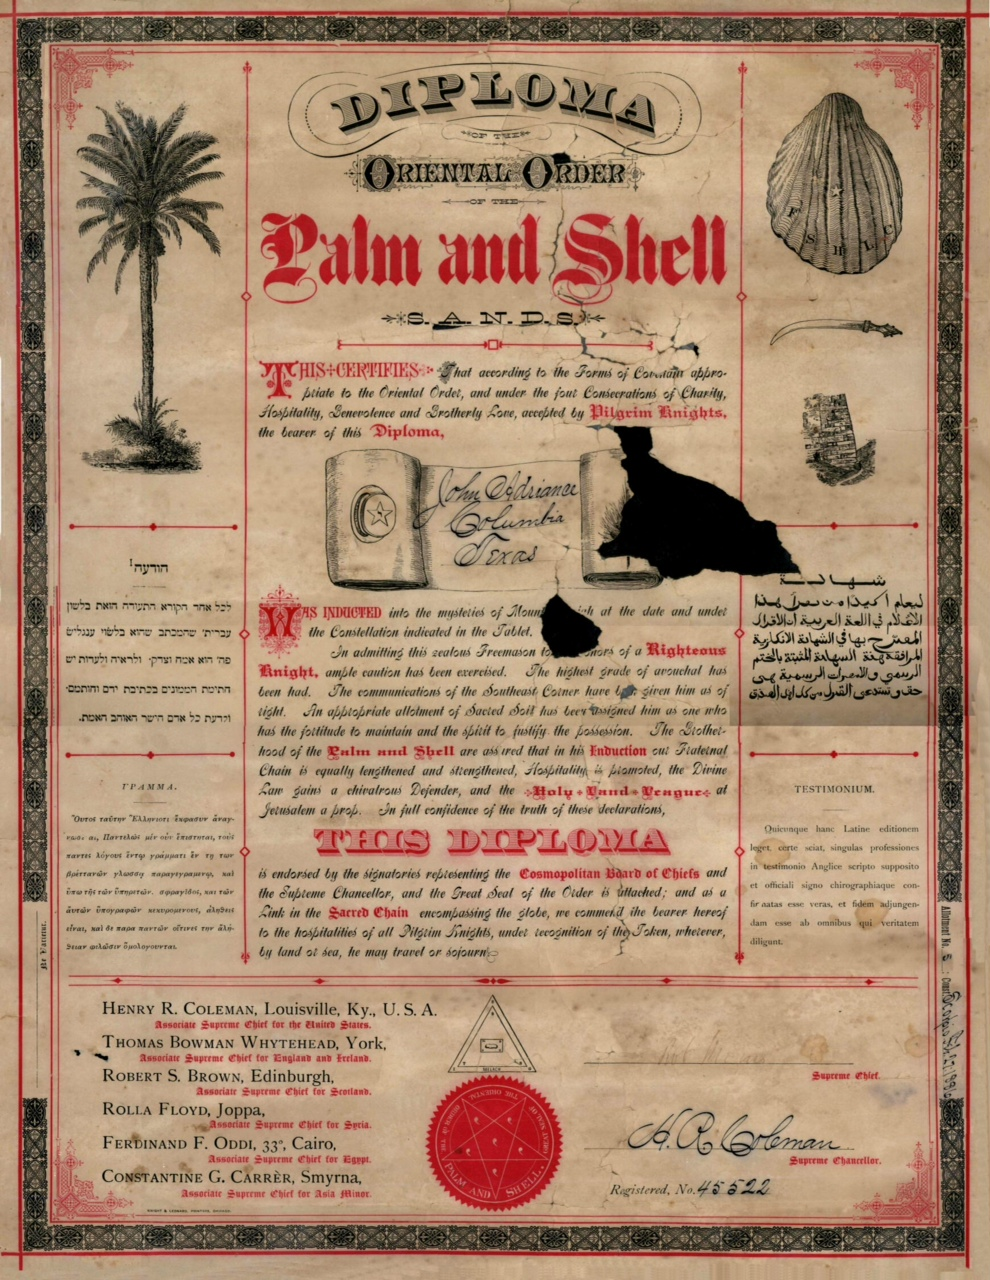 palm_and_shell_membership_certificate.jp